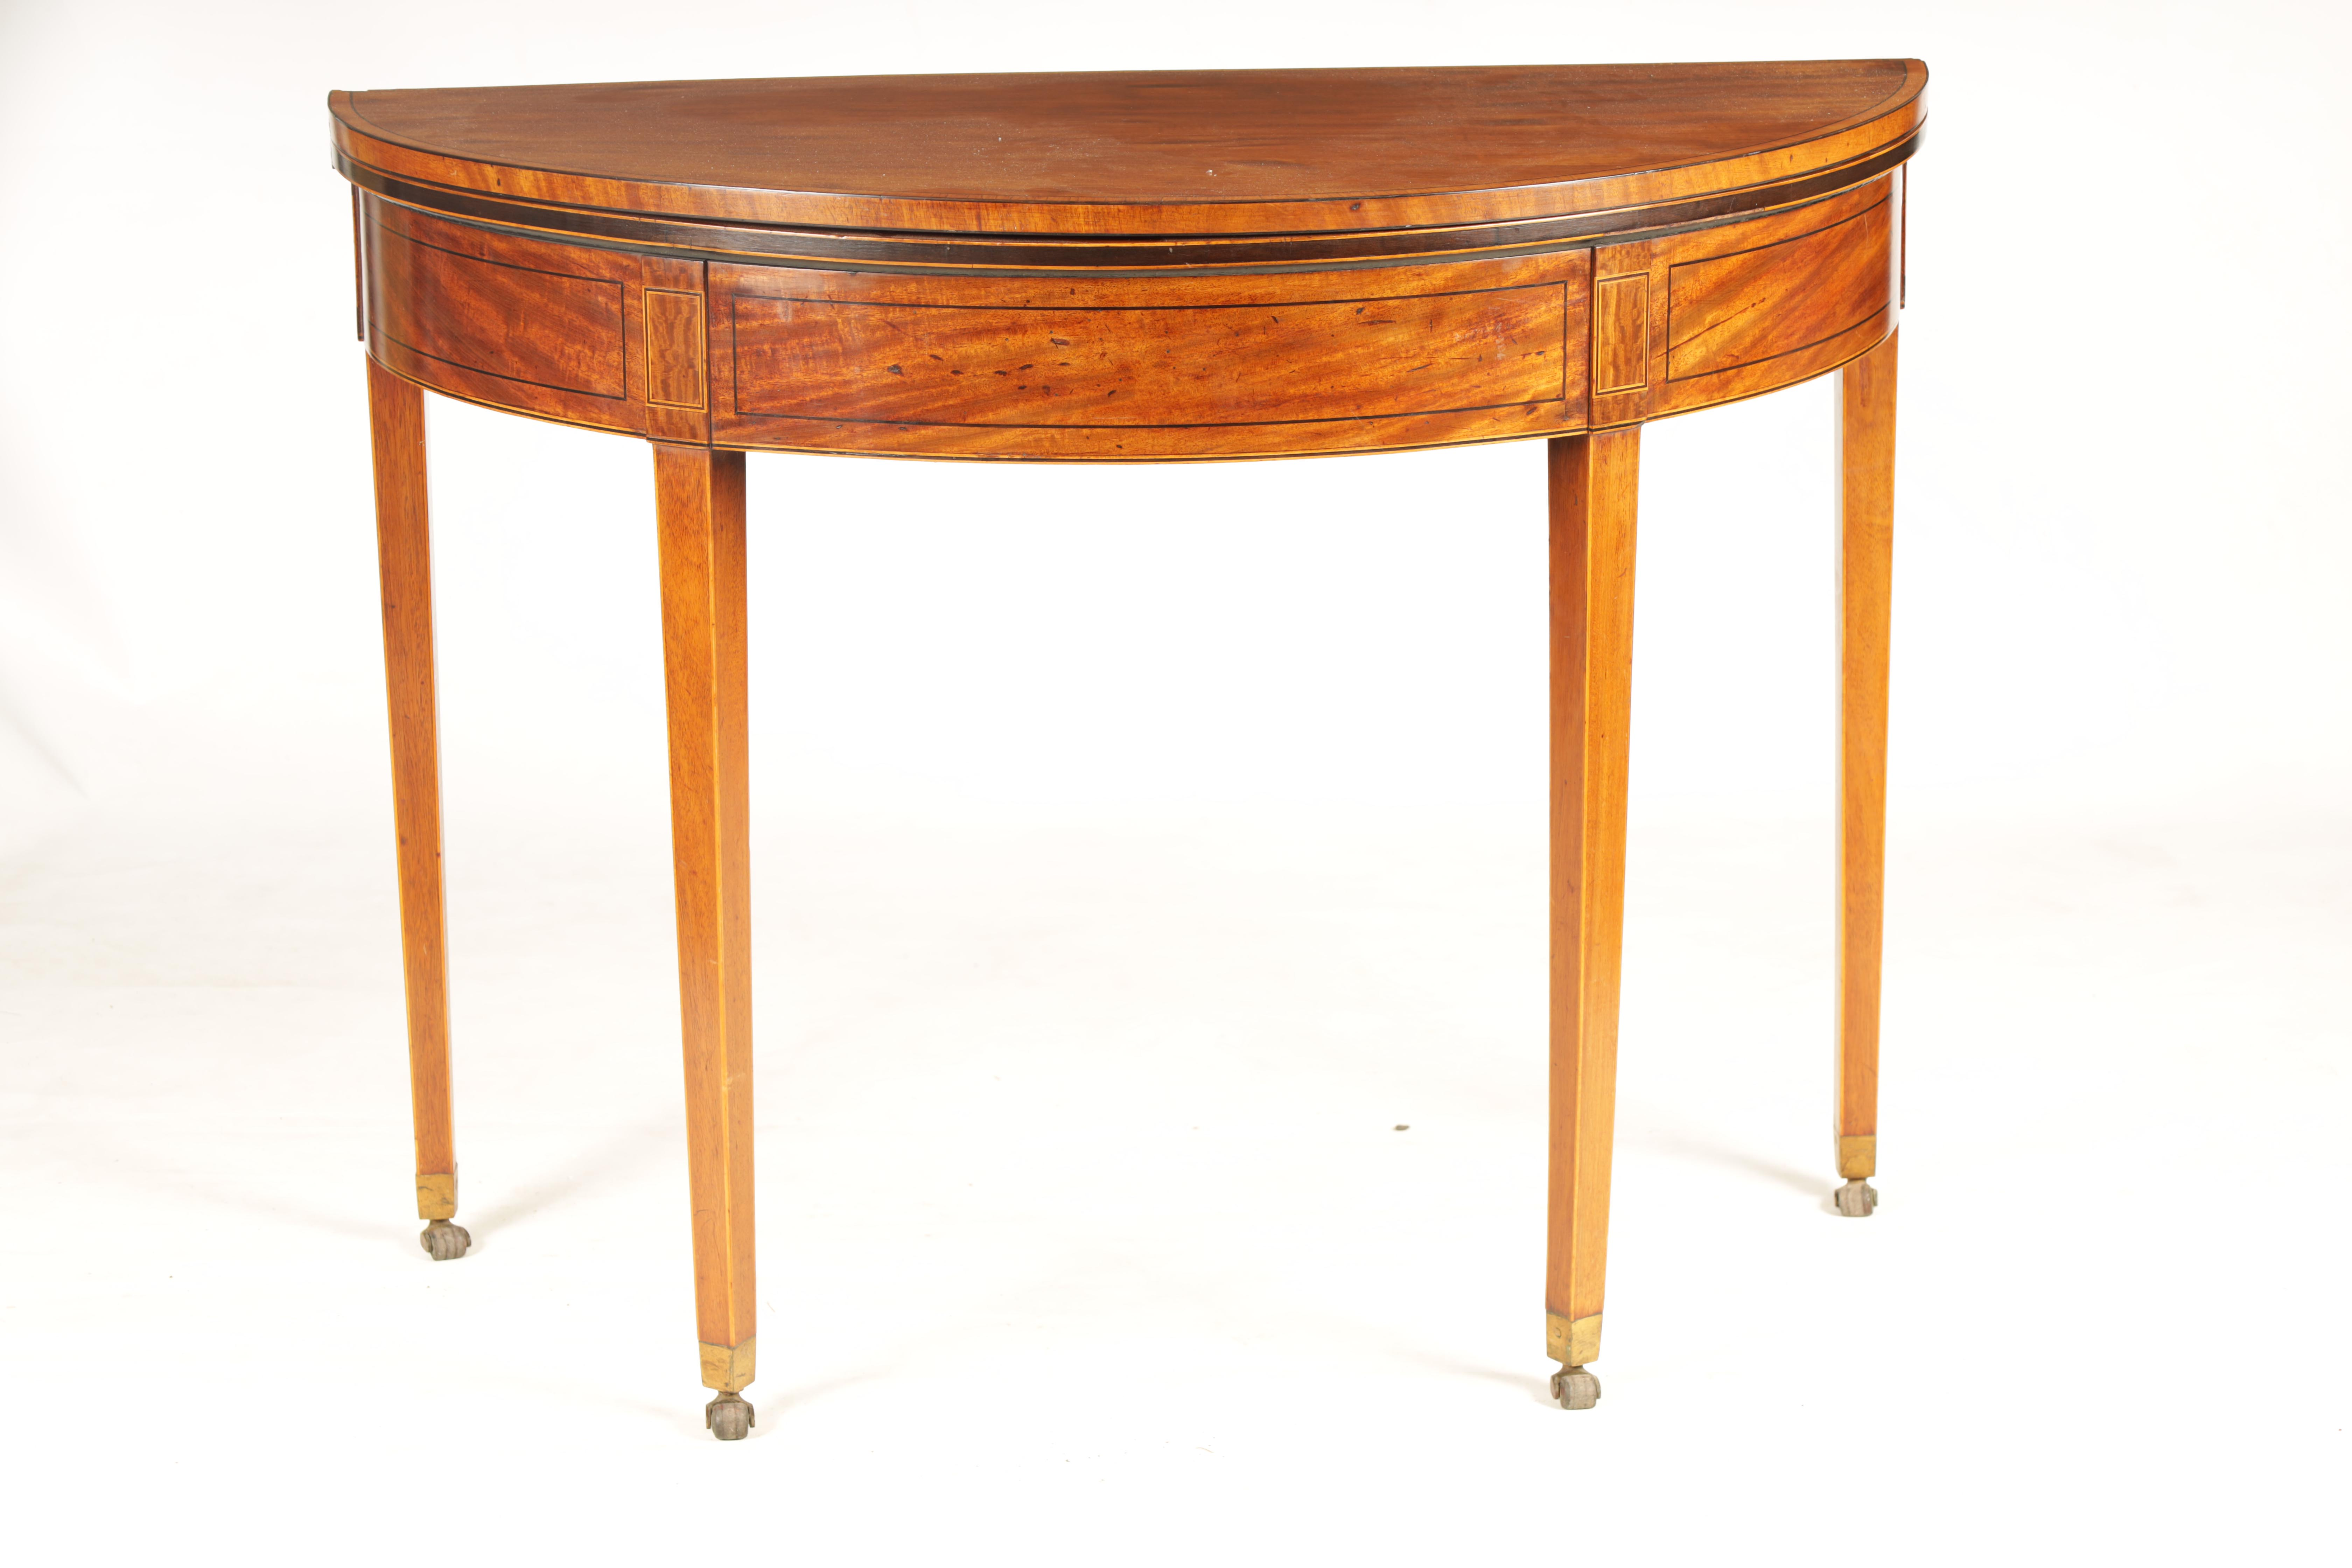 A GEORGE III FIGURED SATINWOOD D END TEA TABLE with hinged top and double gate rear legs; standing - Image 2 of 8